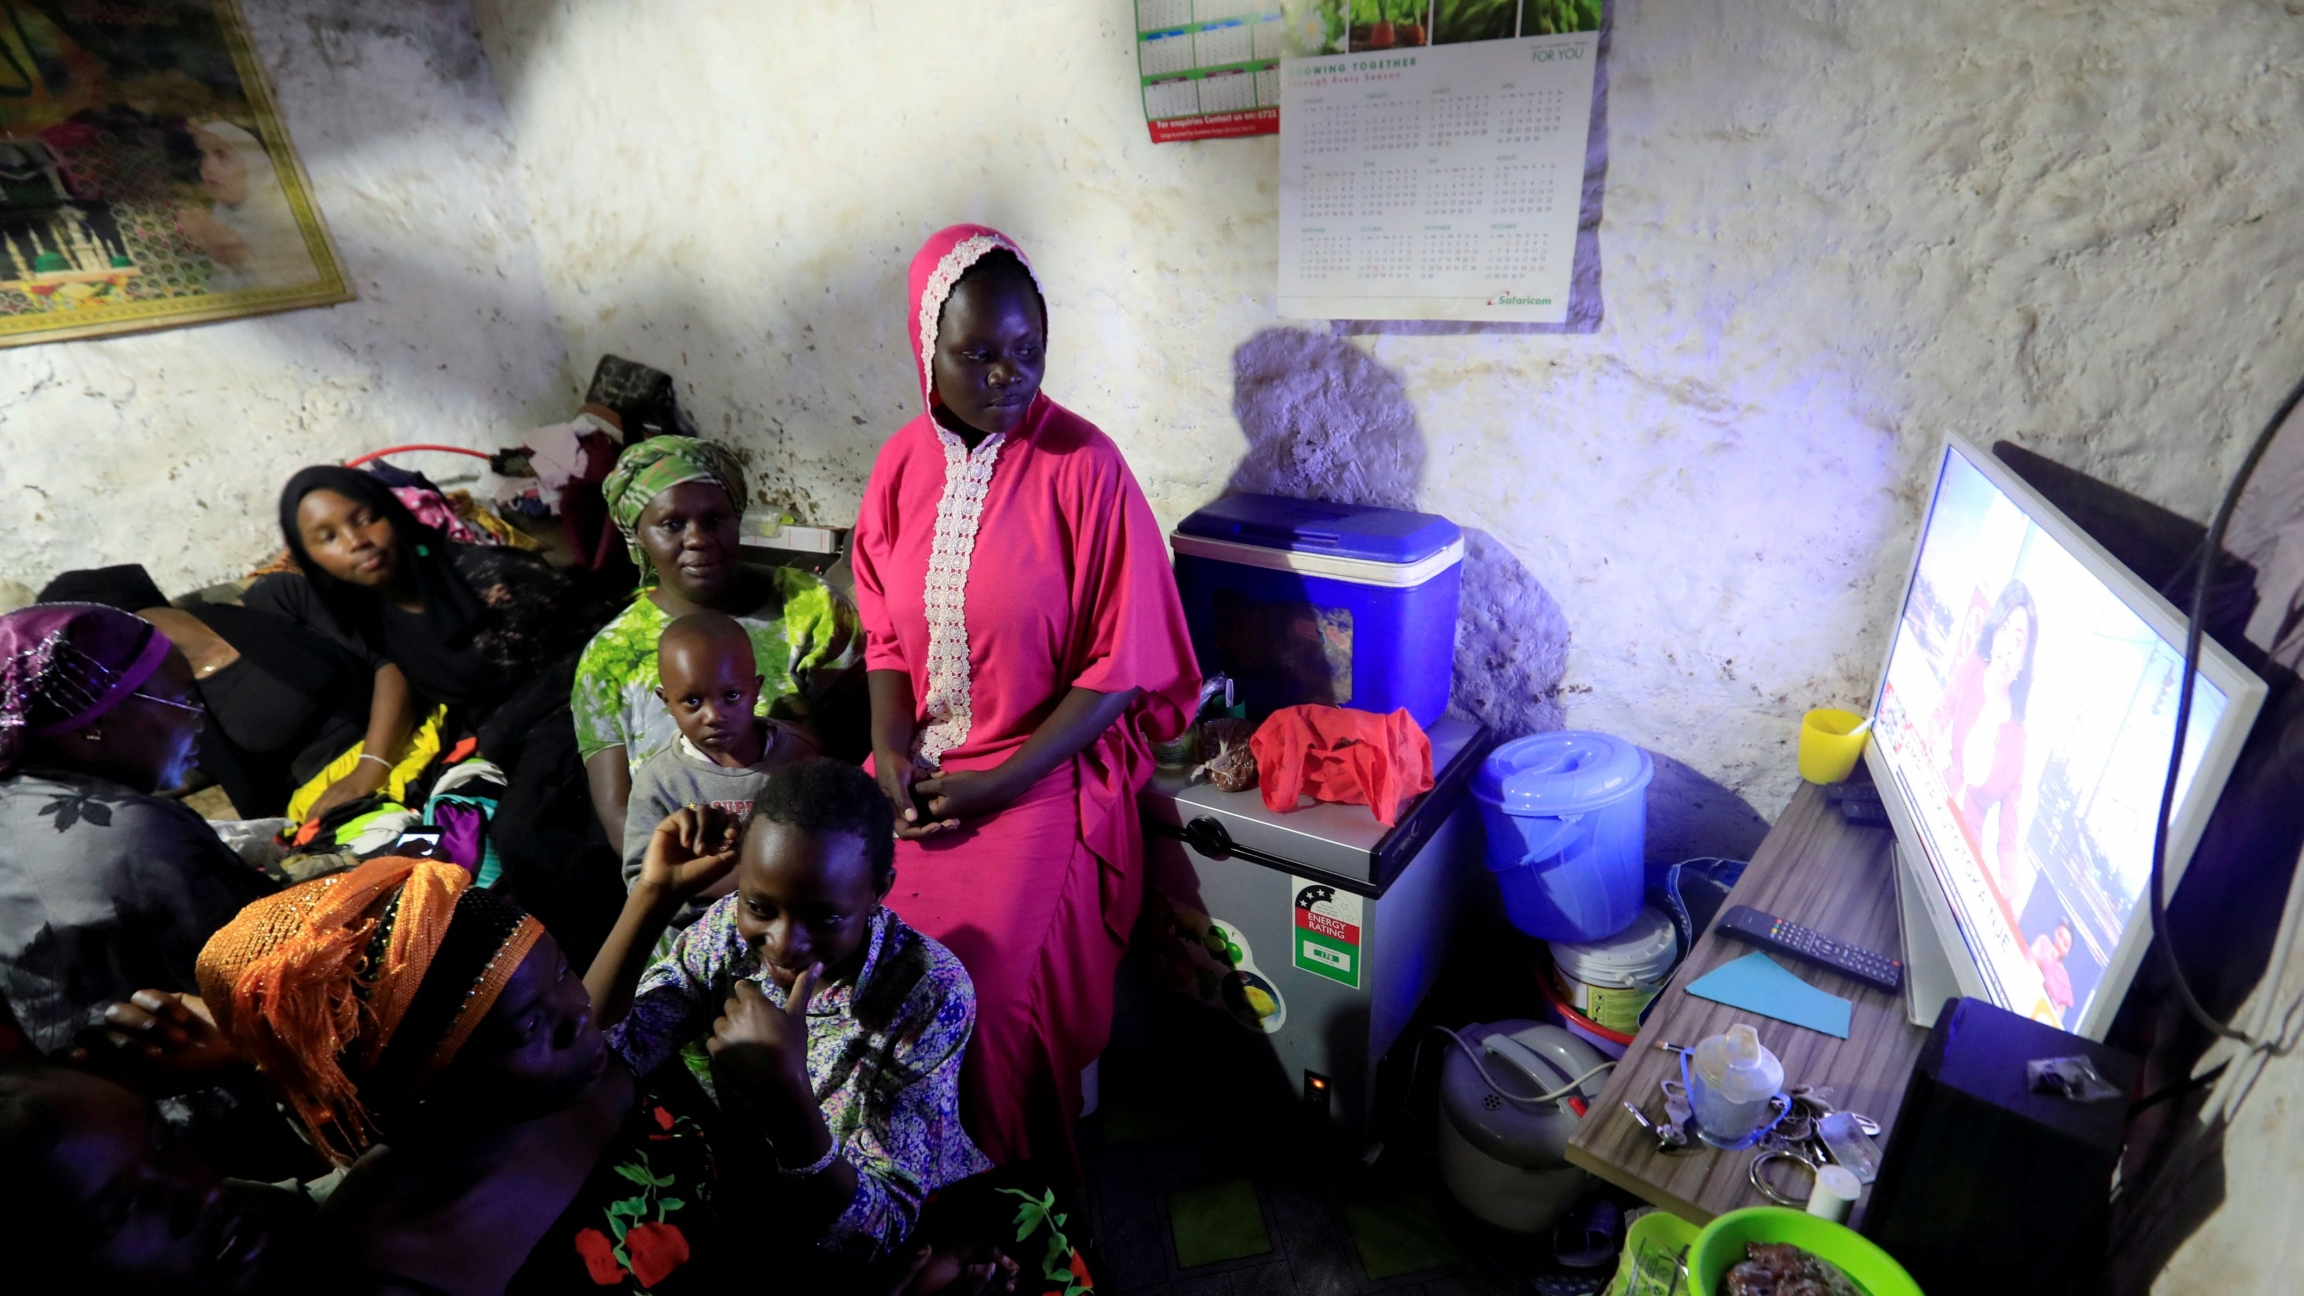 Residents watch a television at the beginning of a curfew which was ordered by the Kenya's President Uhuru Kenyatta to contain the spread of the coronavirus disease (COVID-19) inside a house within Kibera slums in Nairobi, Kenya, March 27, 2020.